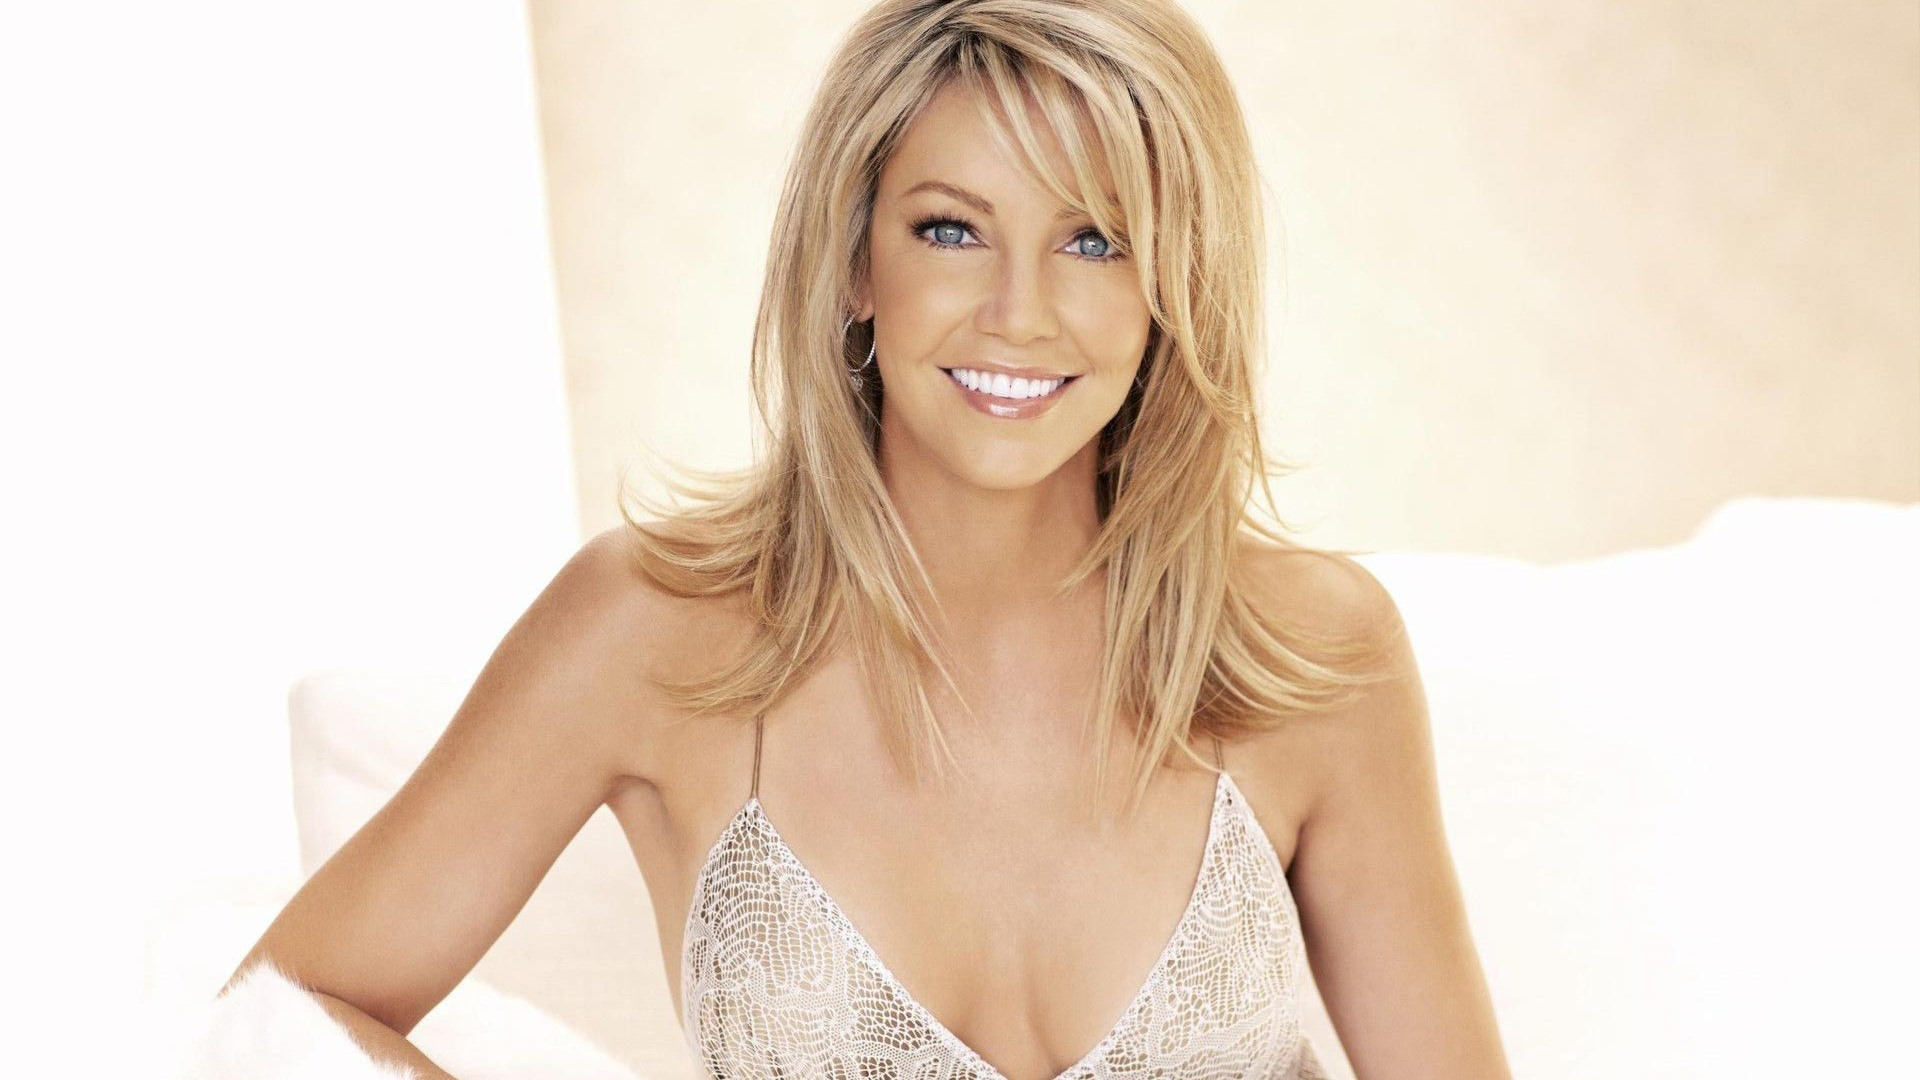 1920x1080 - Heather Locklear Wallpapers 10